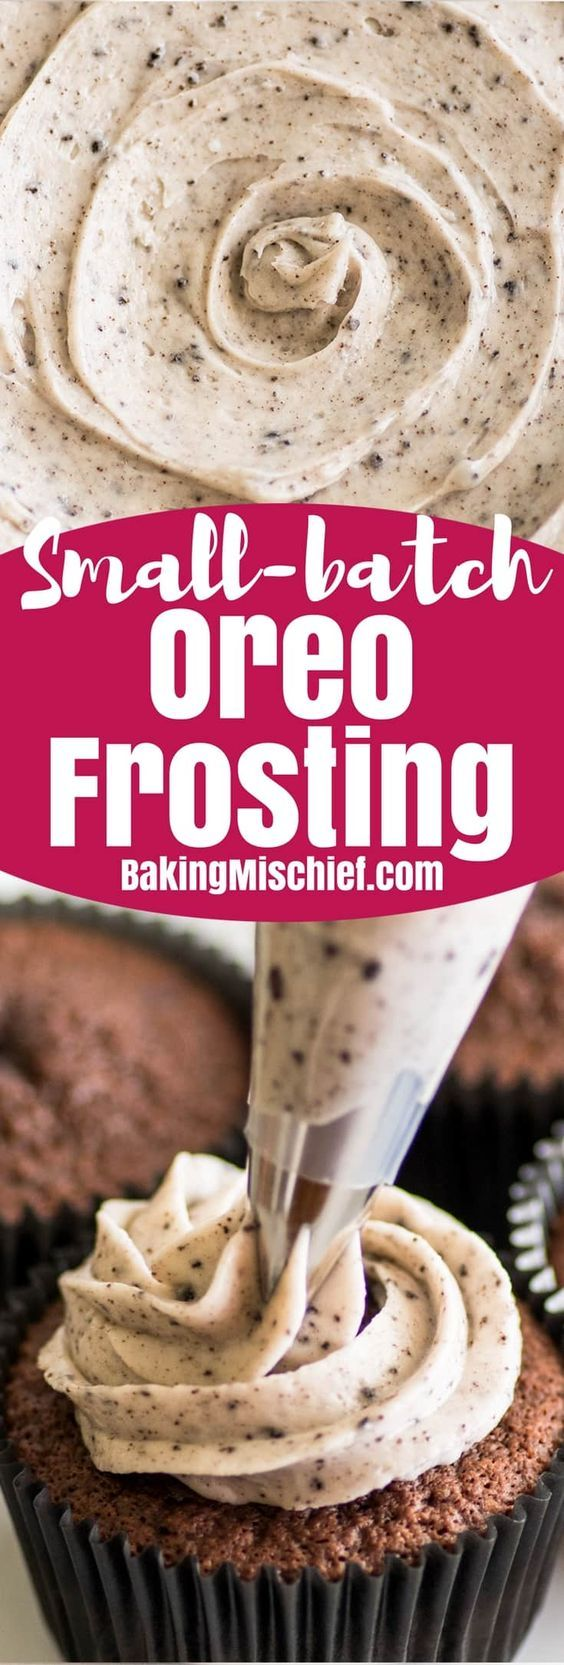 Small-batch Oreo Frosting #cookiesandcreamfrosting